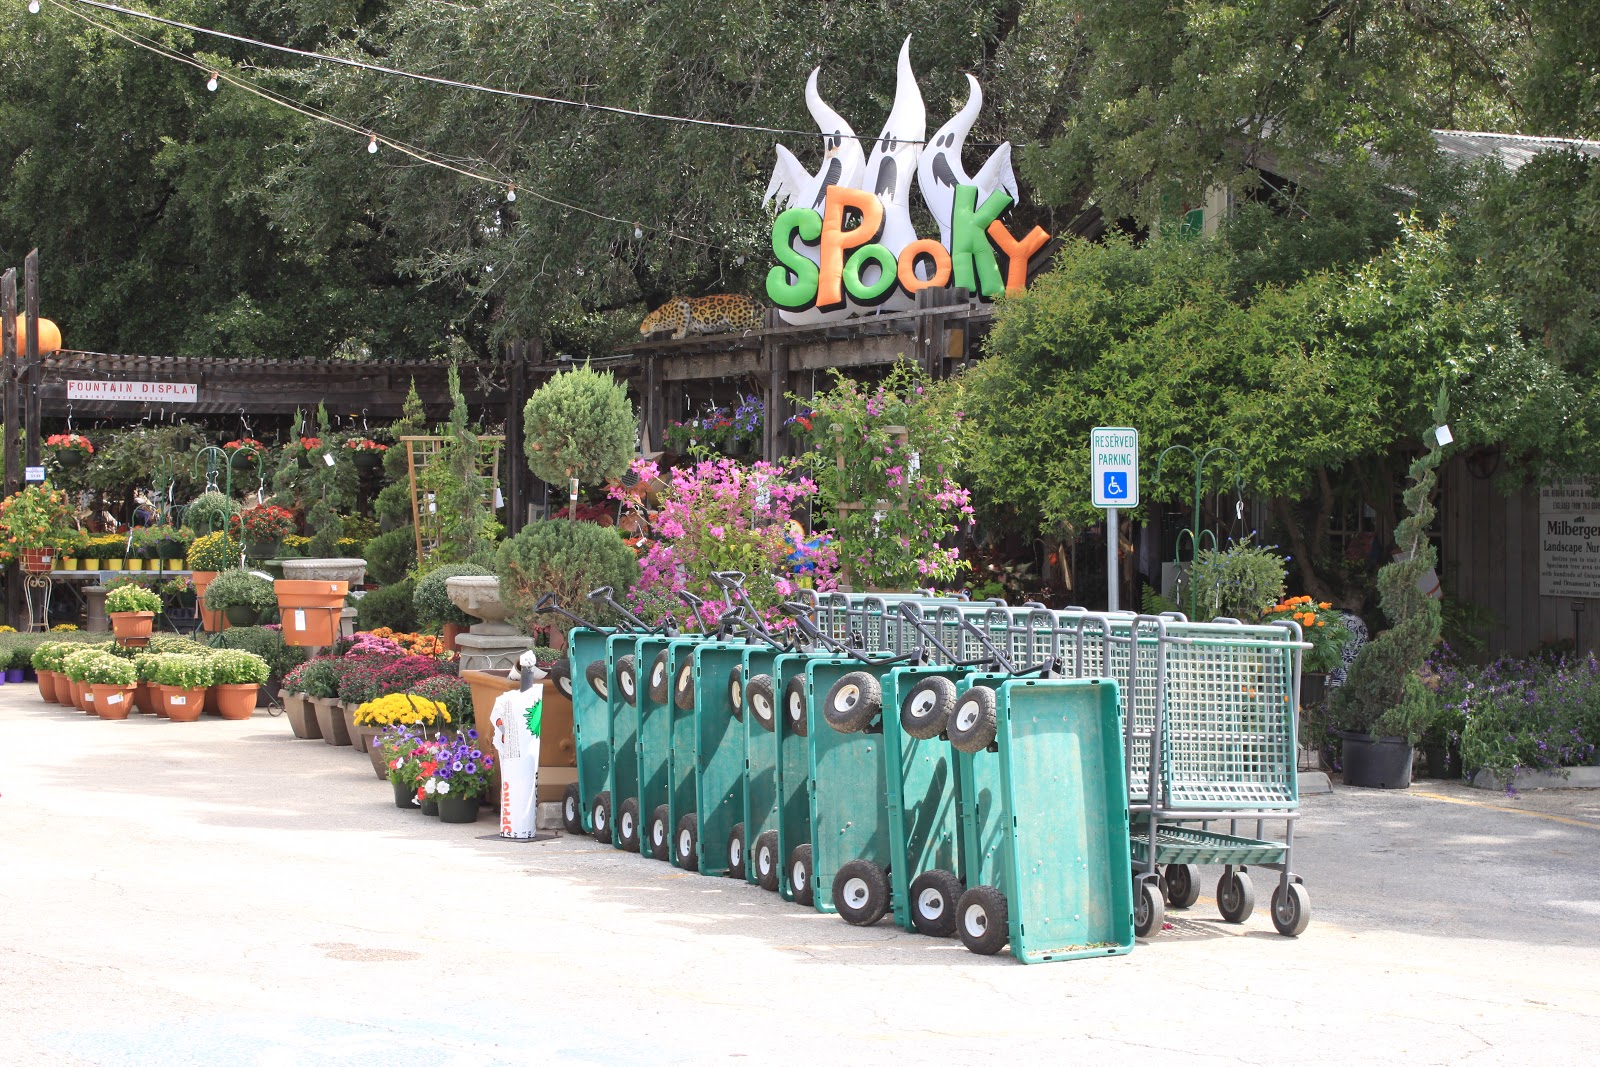 Milberger S Is In A Beautiful Tree Shaded Location With Huge Selection Of Plants And Gardening Items During October The Y Decorations Fall Displays